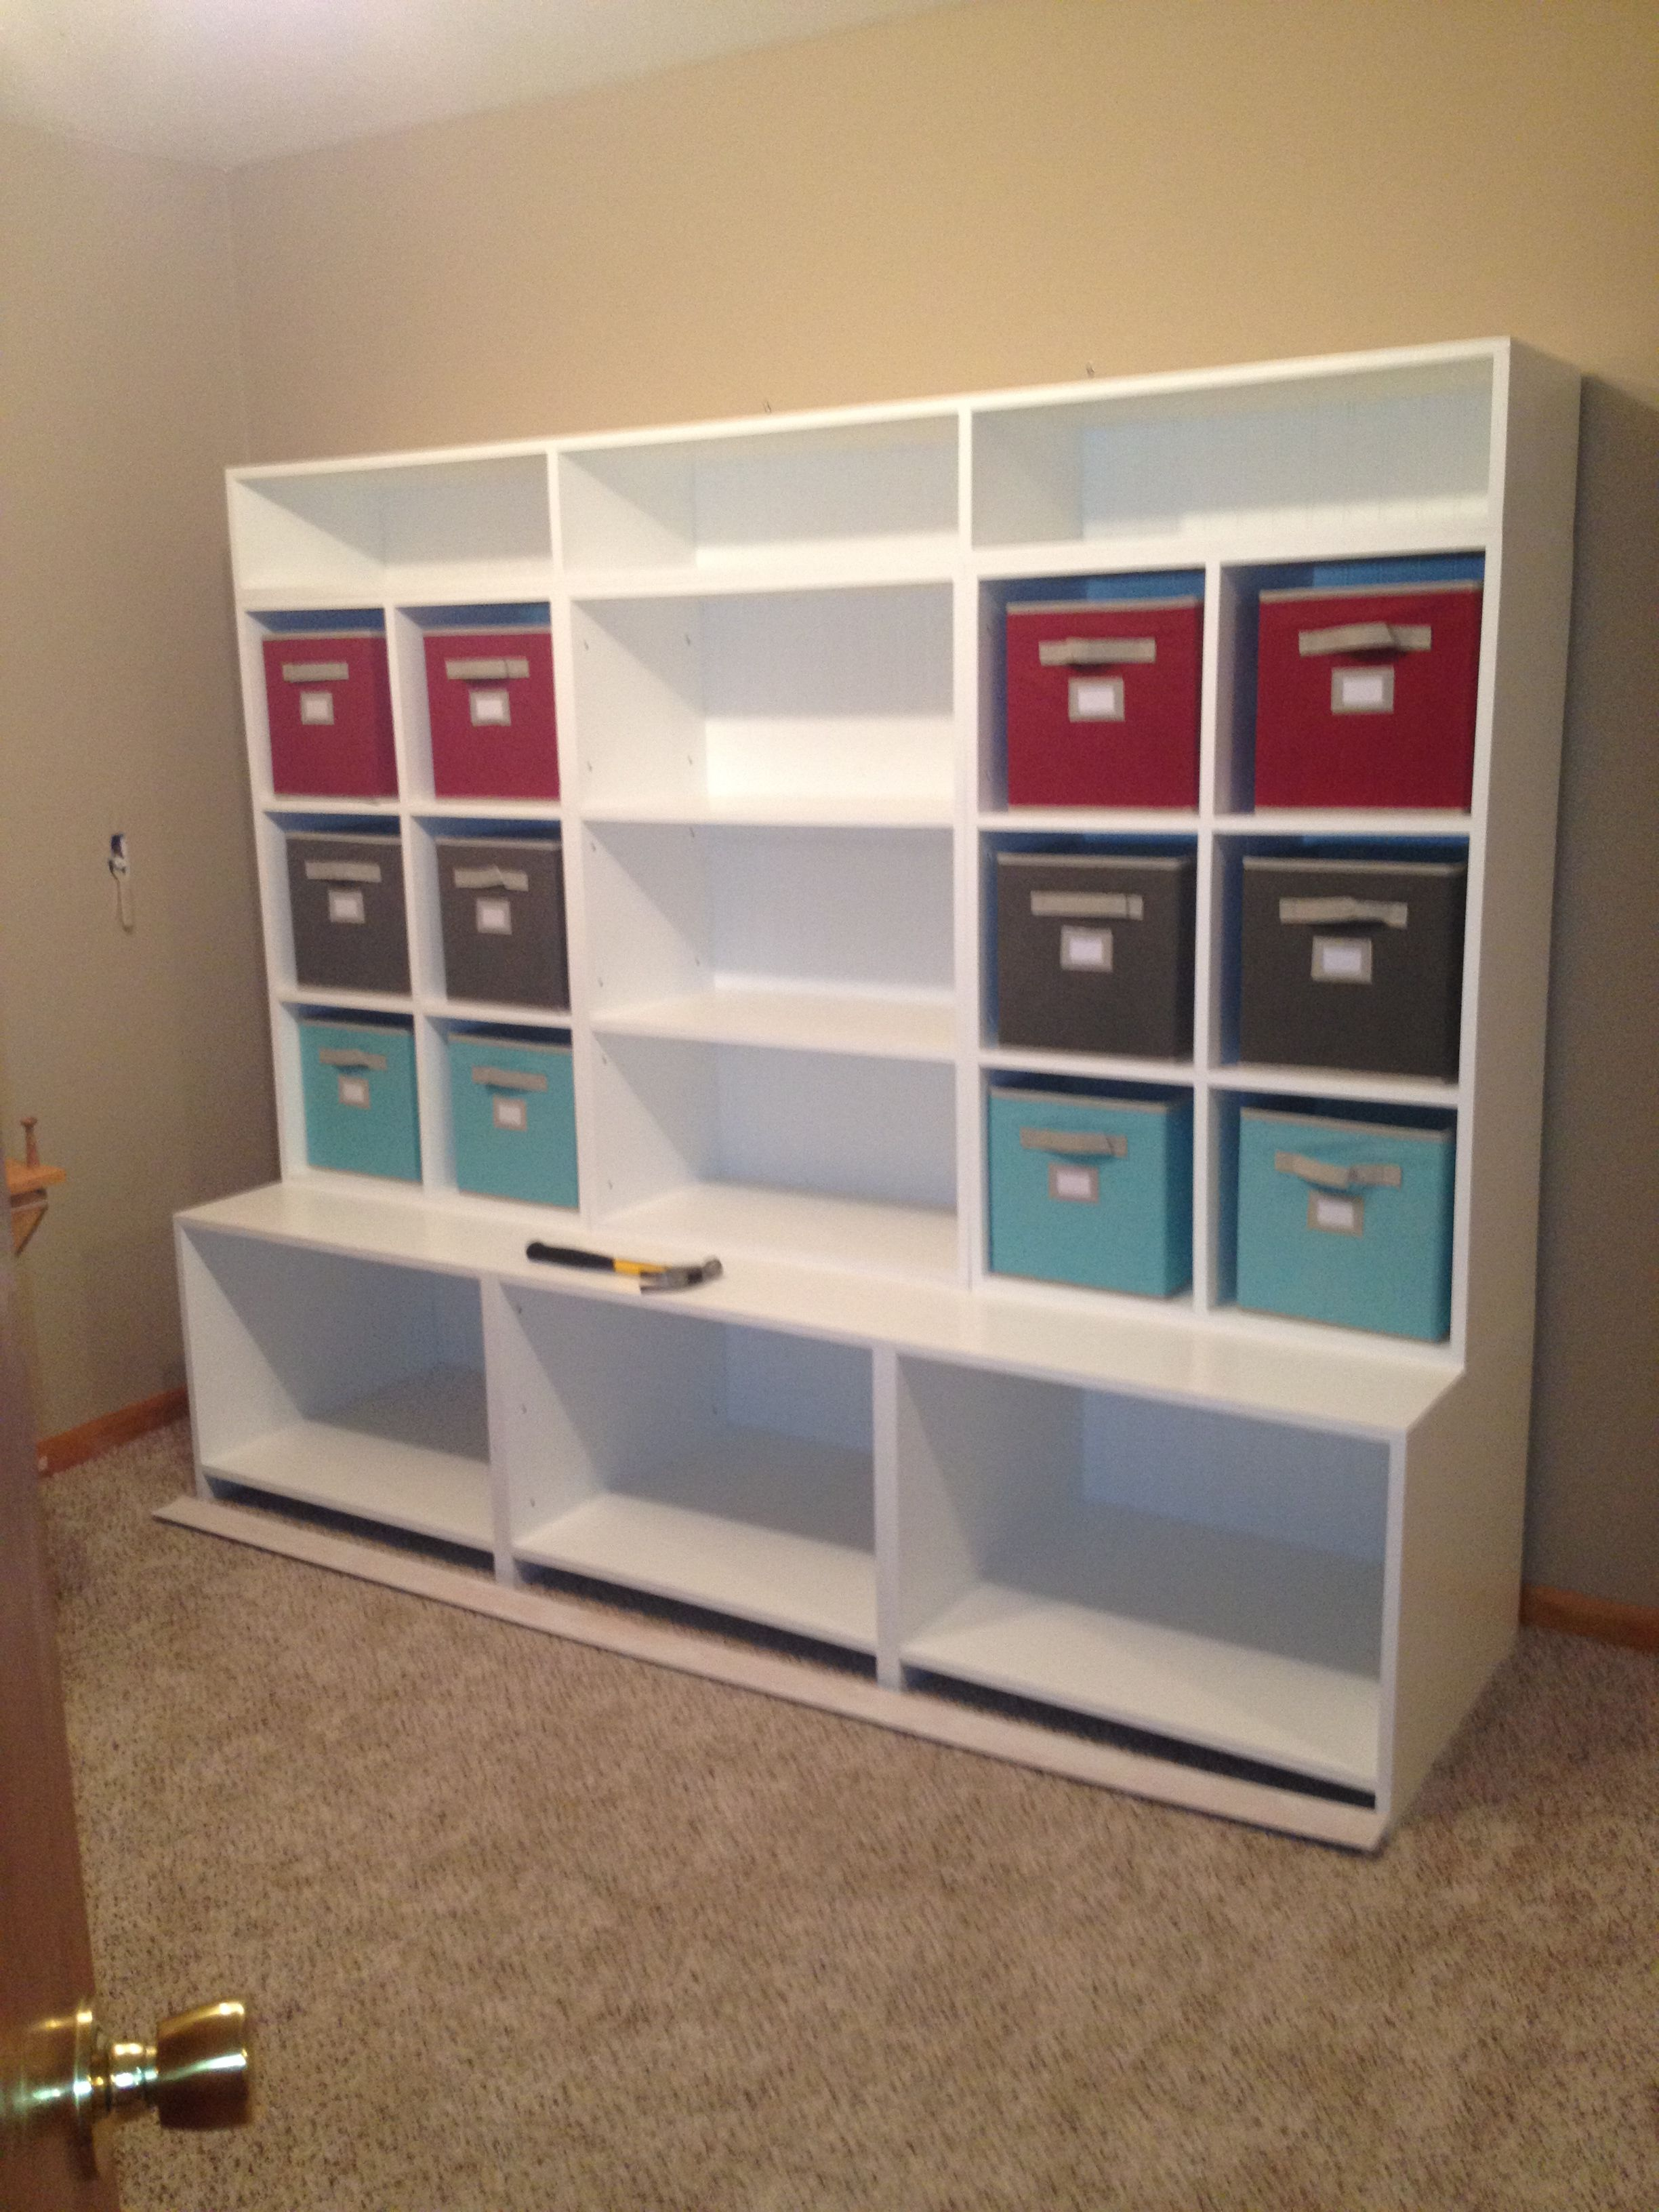 Toy storage do it yourself home projects from ana white neat toy storage diy projects solutioingenieria Choice Image